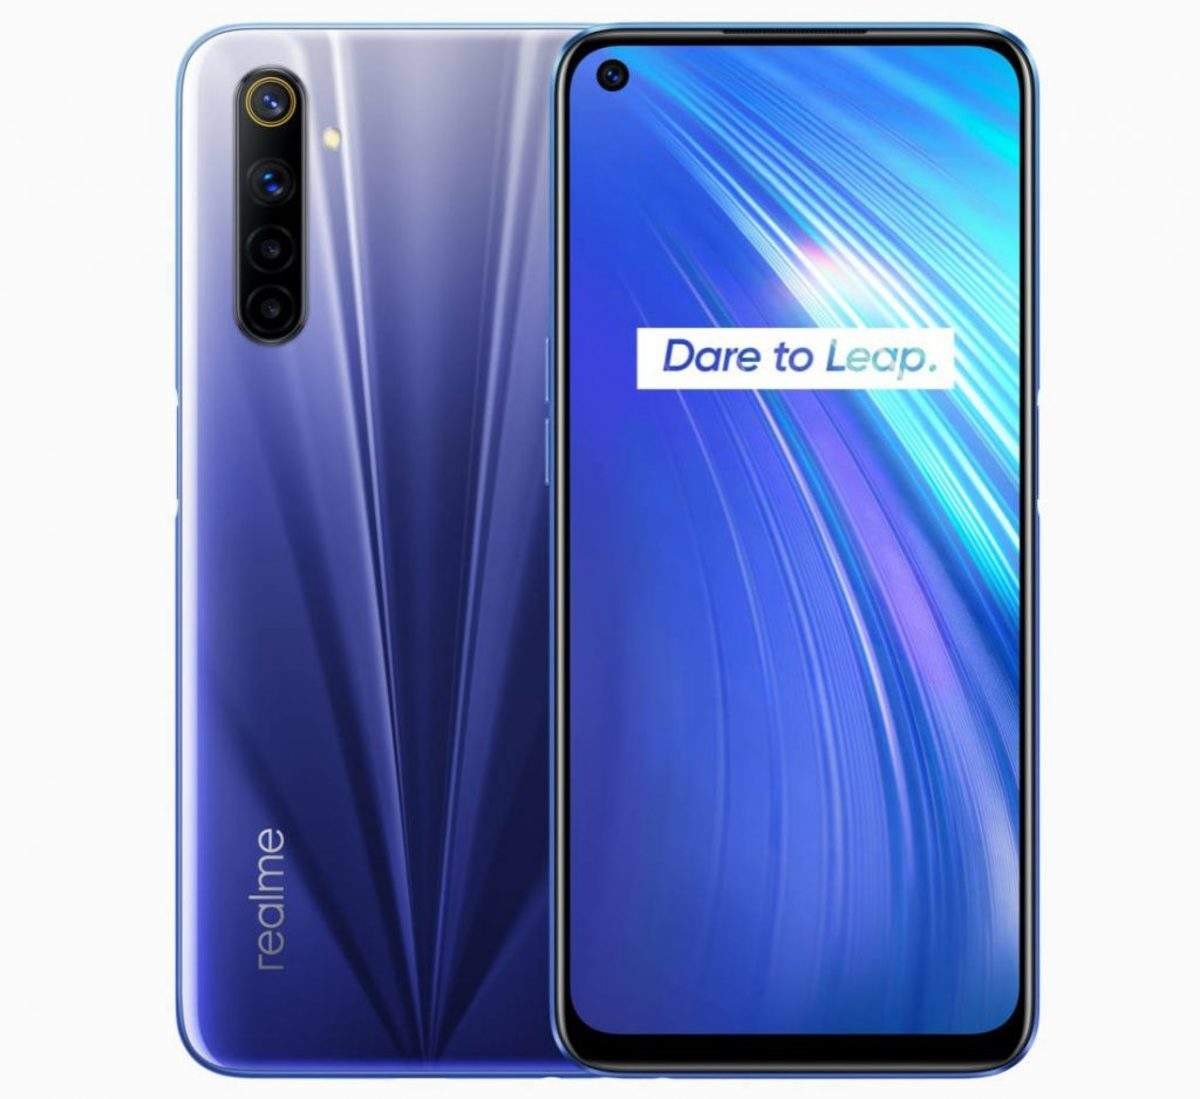 Realme 6 Pro Price in India: Realme 6, Realme 6 Pro launched in India,  price starts at Rs 12,999 - Mobiles News | Gadgets Now